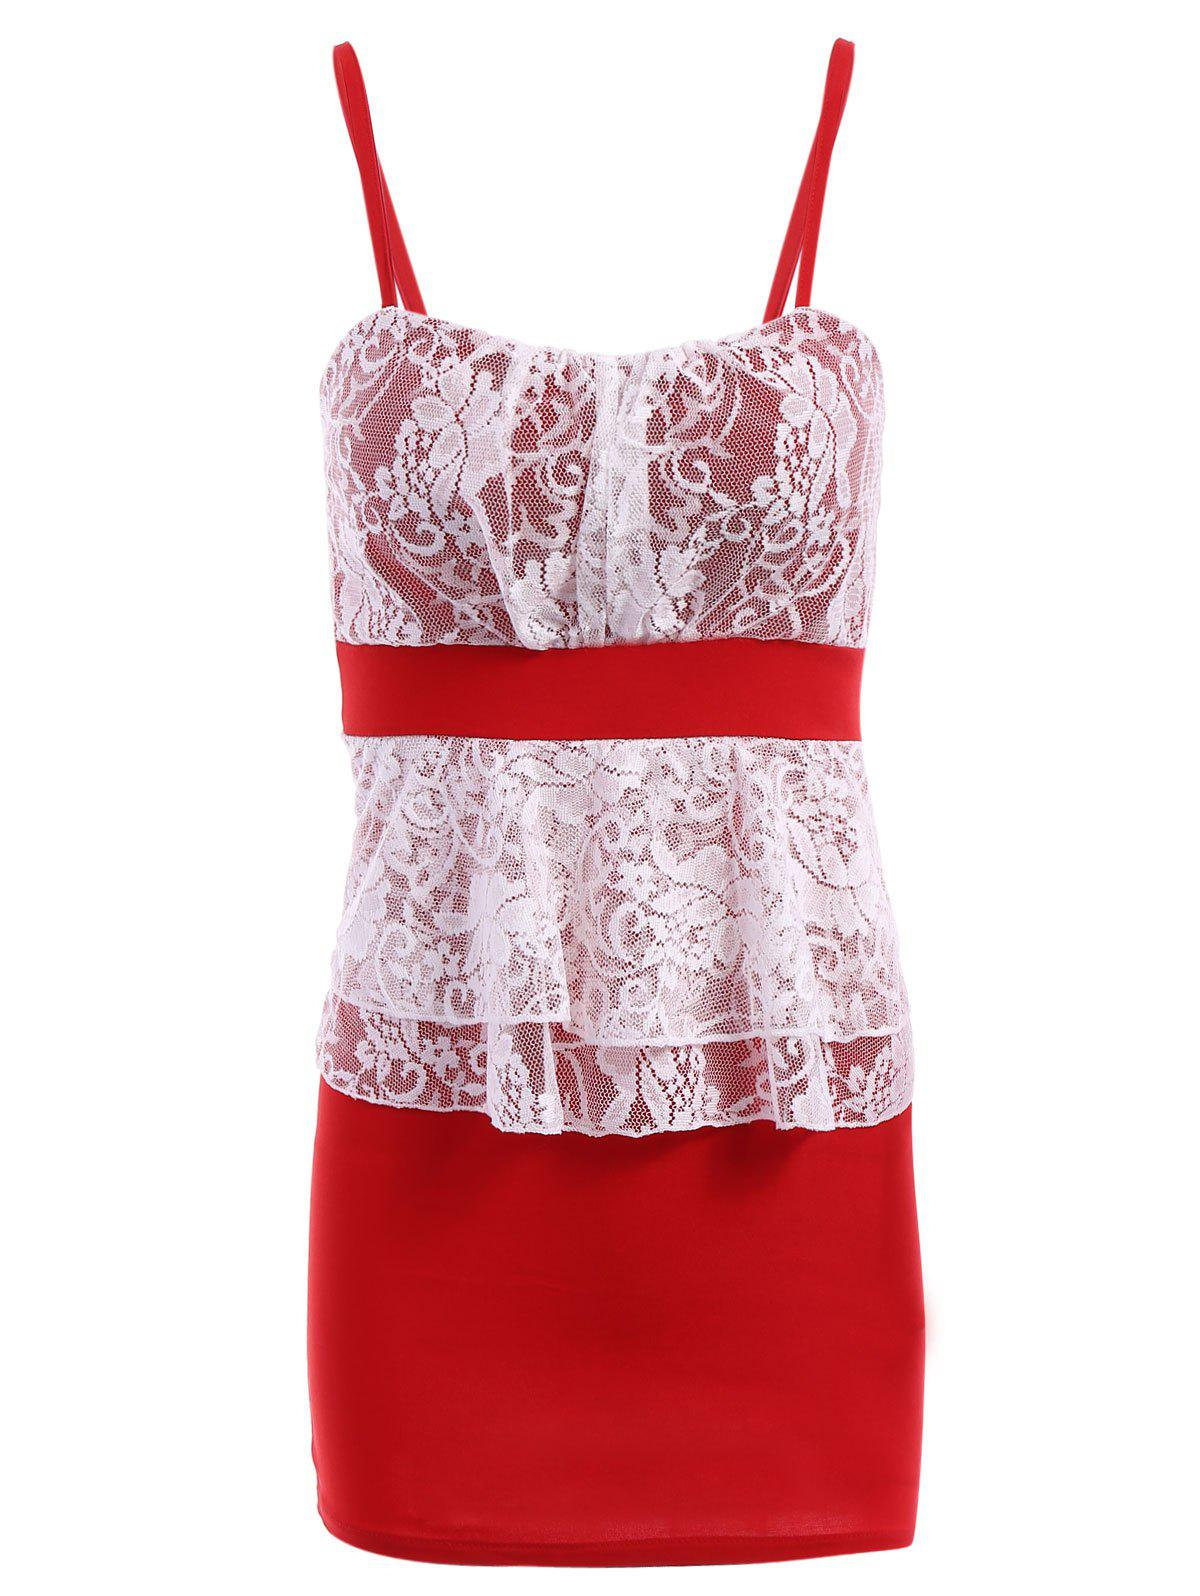 Stylish Women's Spaghetti Straps Lace Splicing Color Block Dress - RED ONE SIZE(FIT SIZE XS TO M)